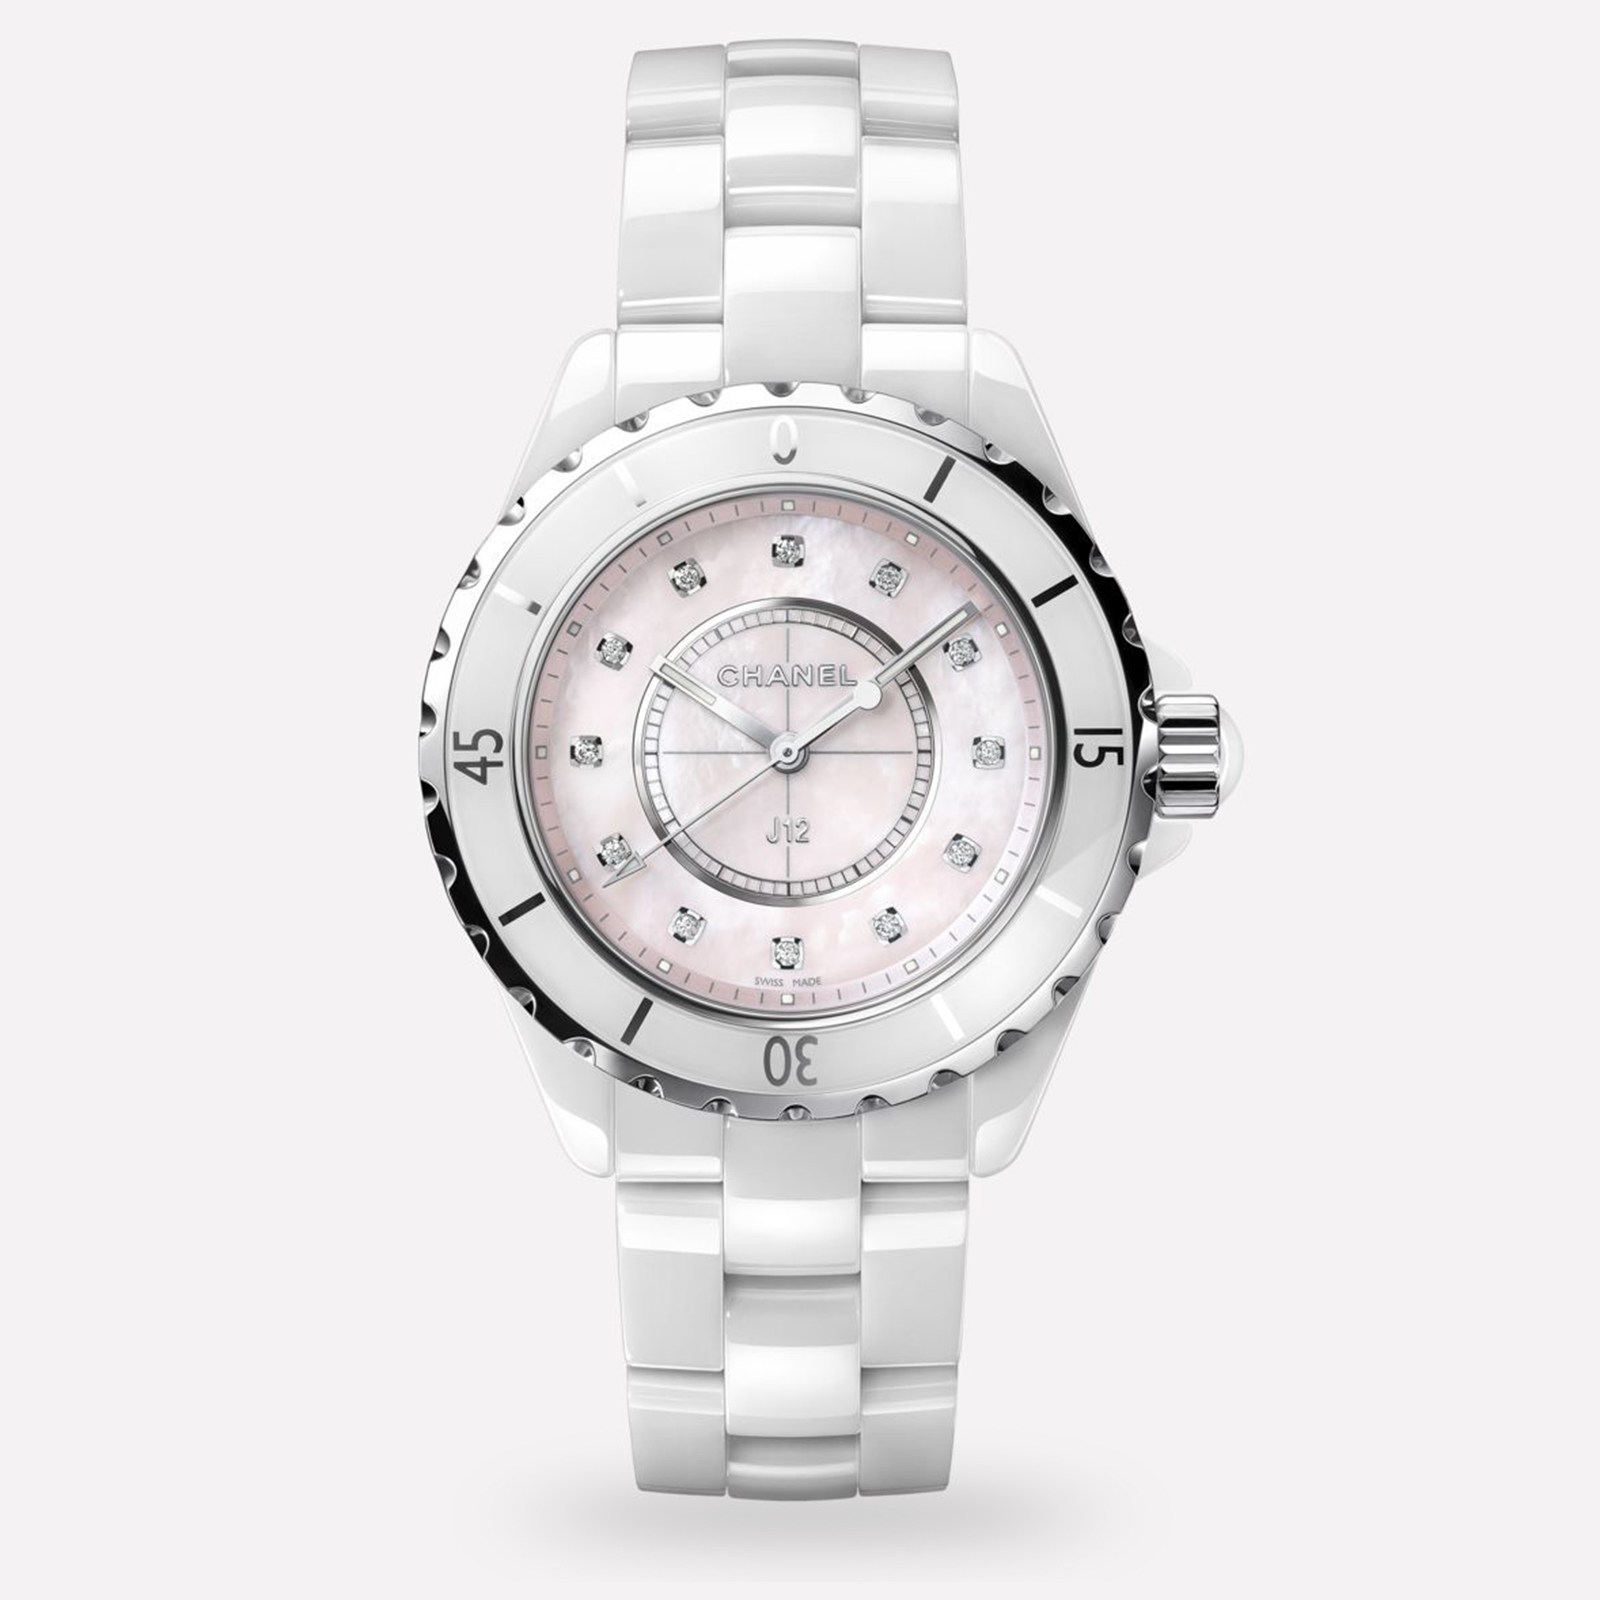 Chanel J12 White Ceramic and Steel H5513 33mm